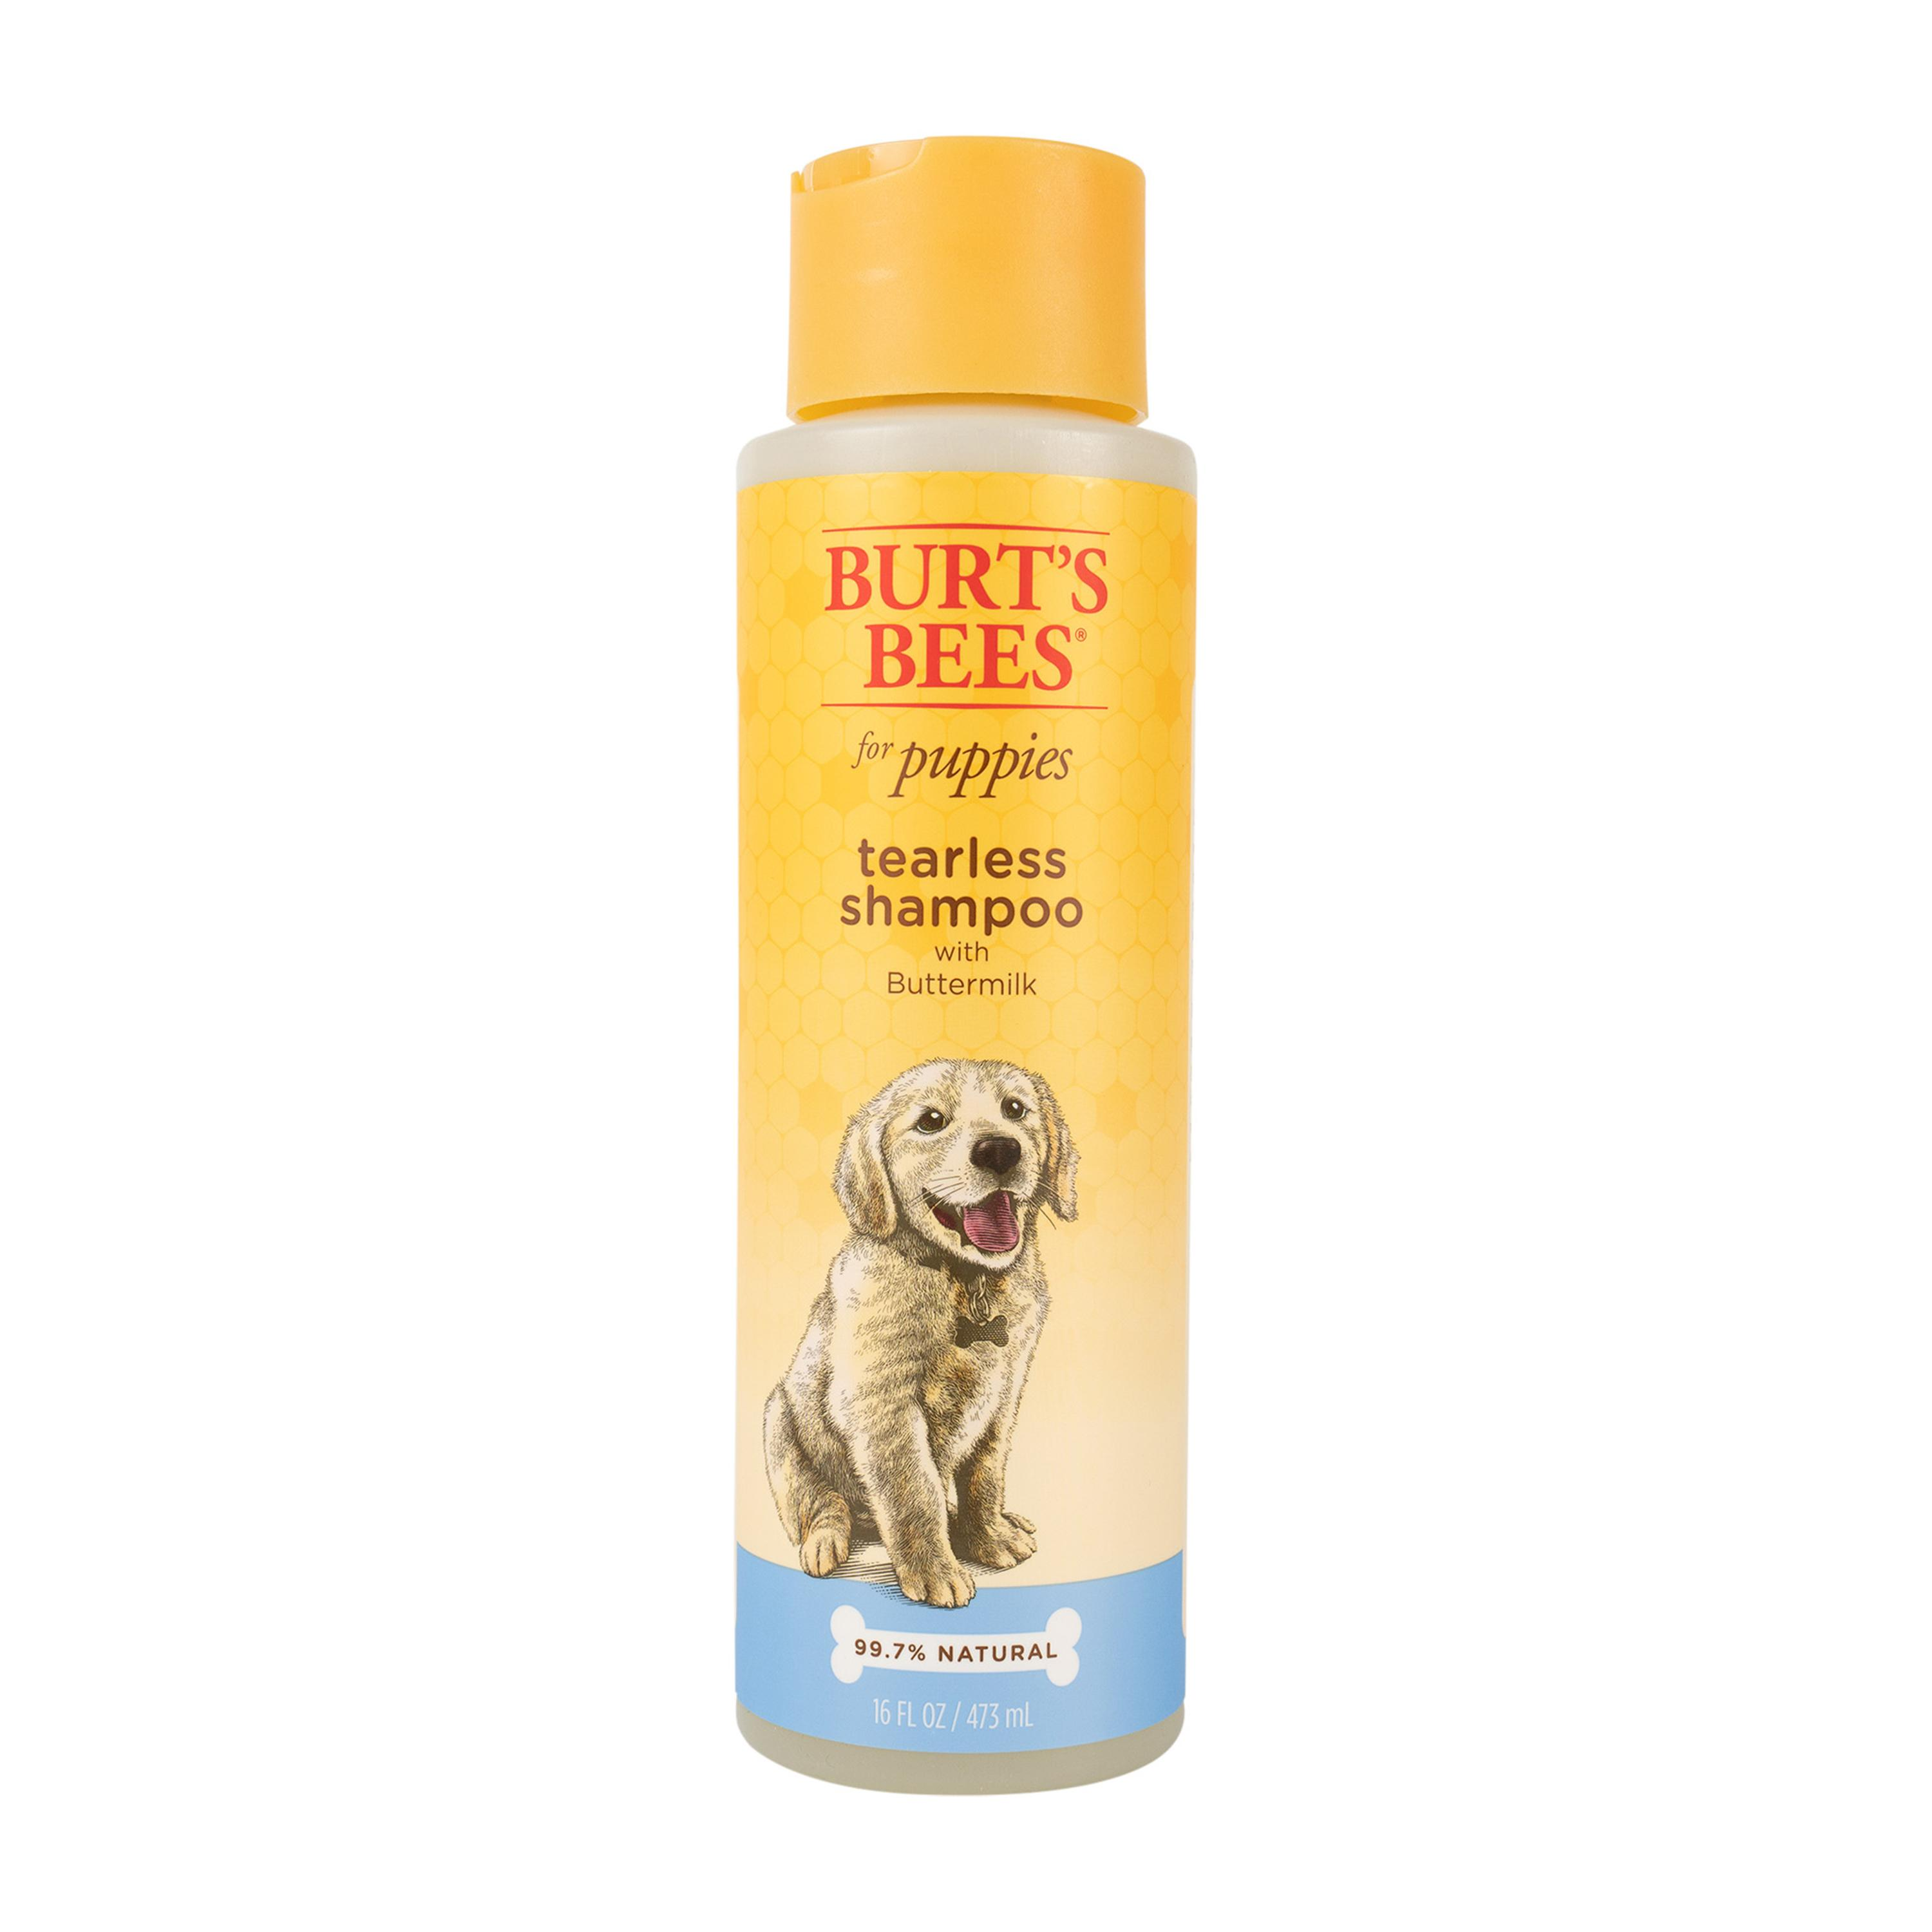 Burt's Bees Tearless Puppy Shampoo with Buttermilk for Dogs, 16-oz bottle (Size: 16-oz) Image